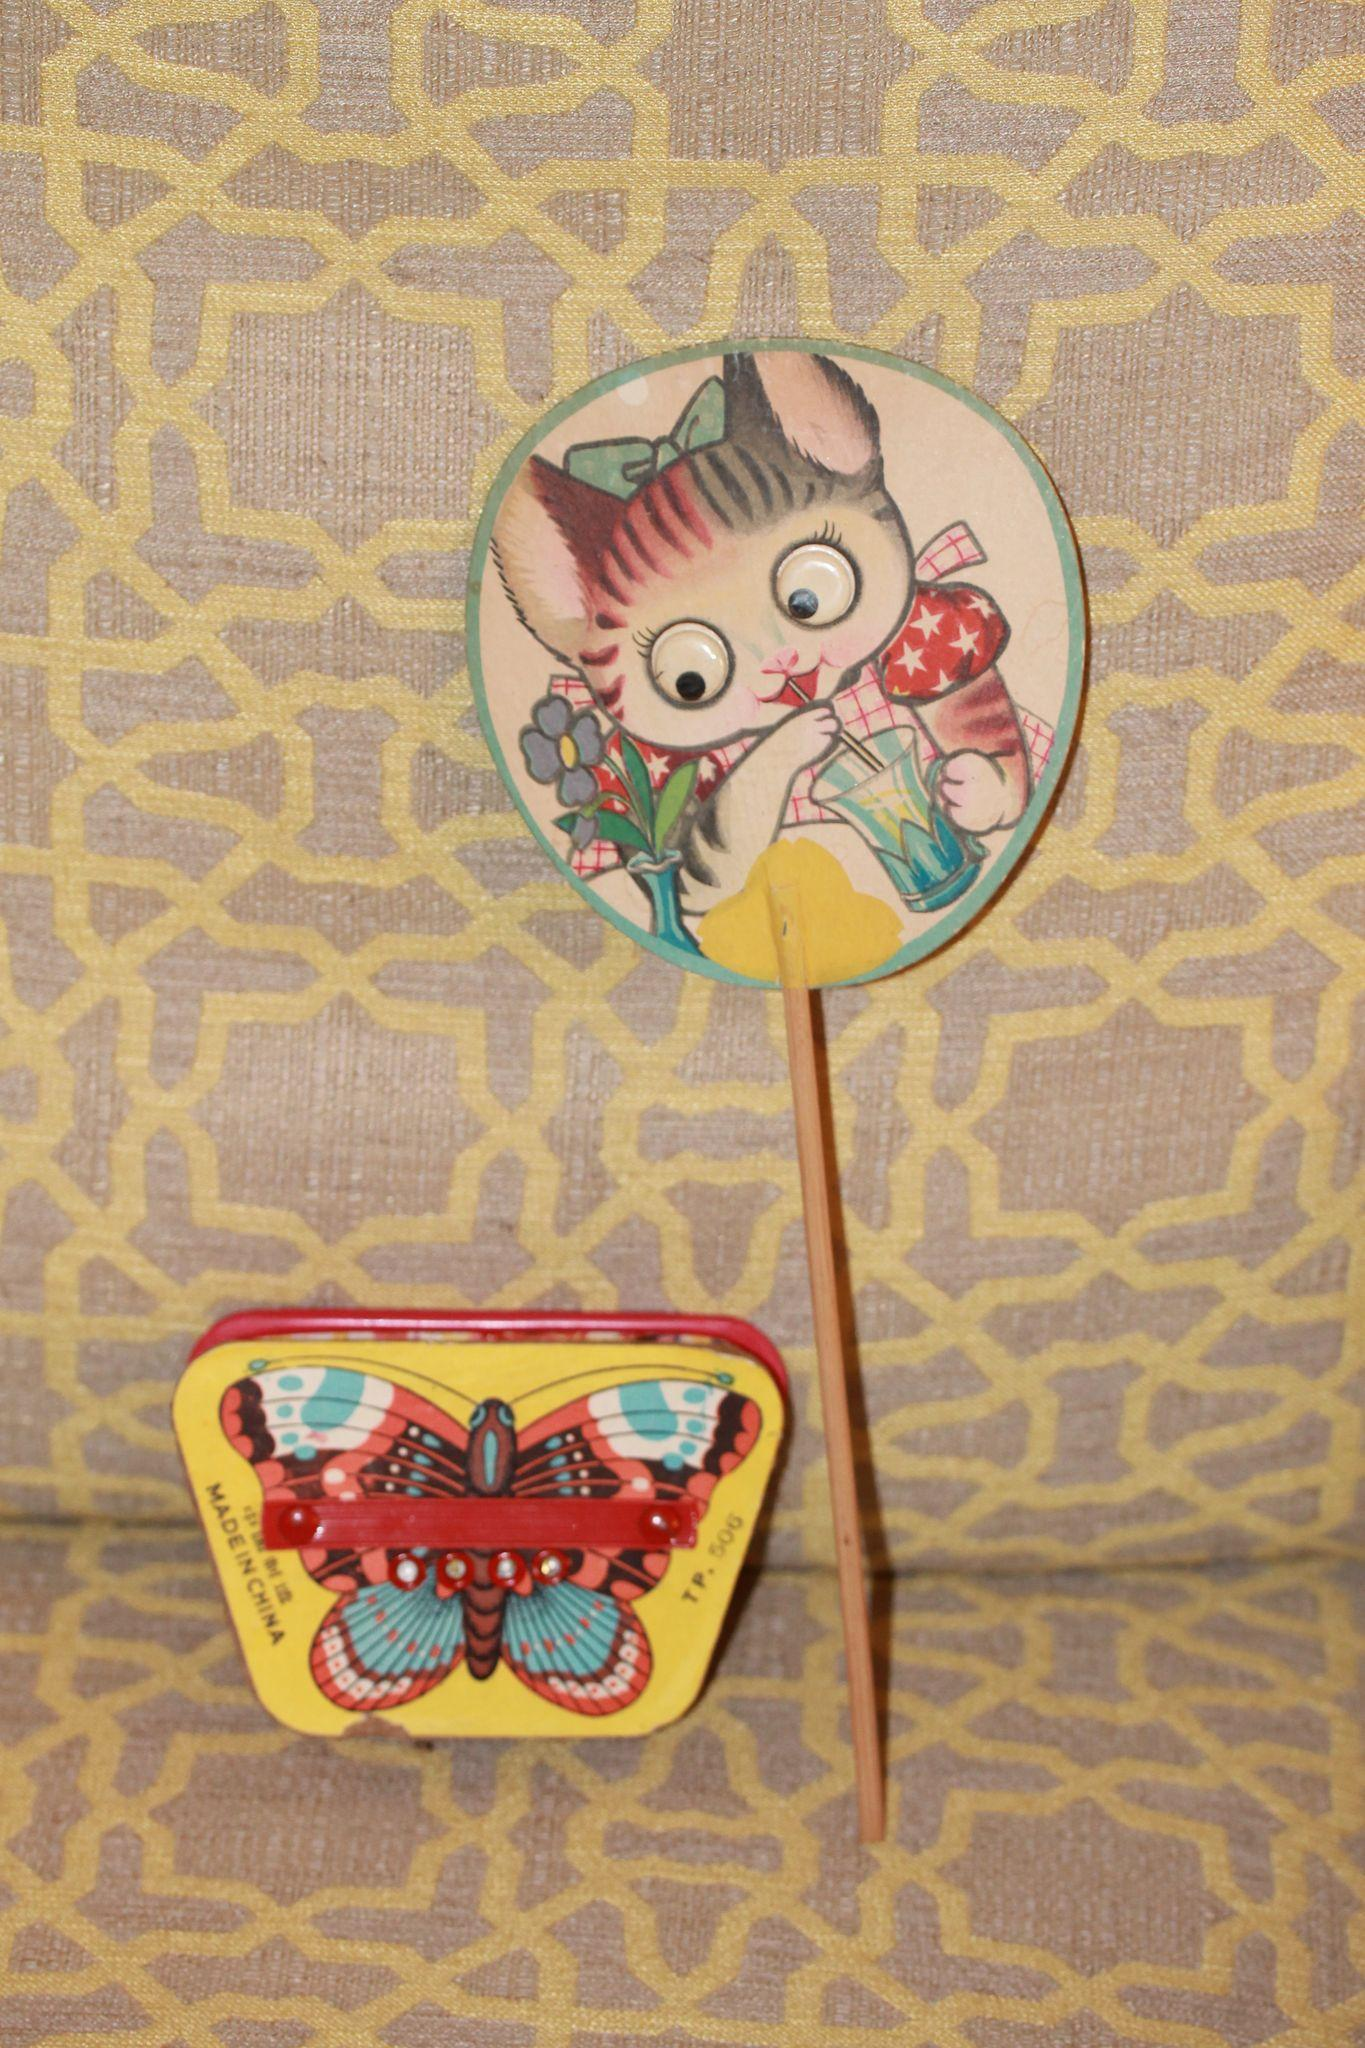 Paper Fan, Squeeze Box for Large Compostion, Bisque, Plastic Dolls